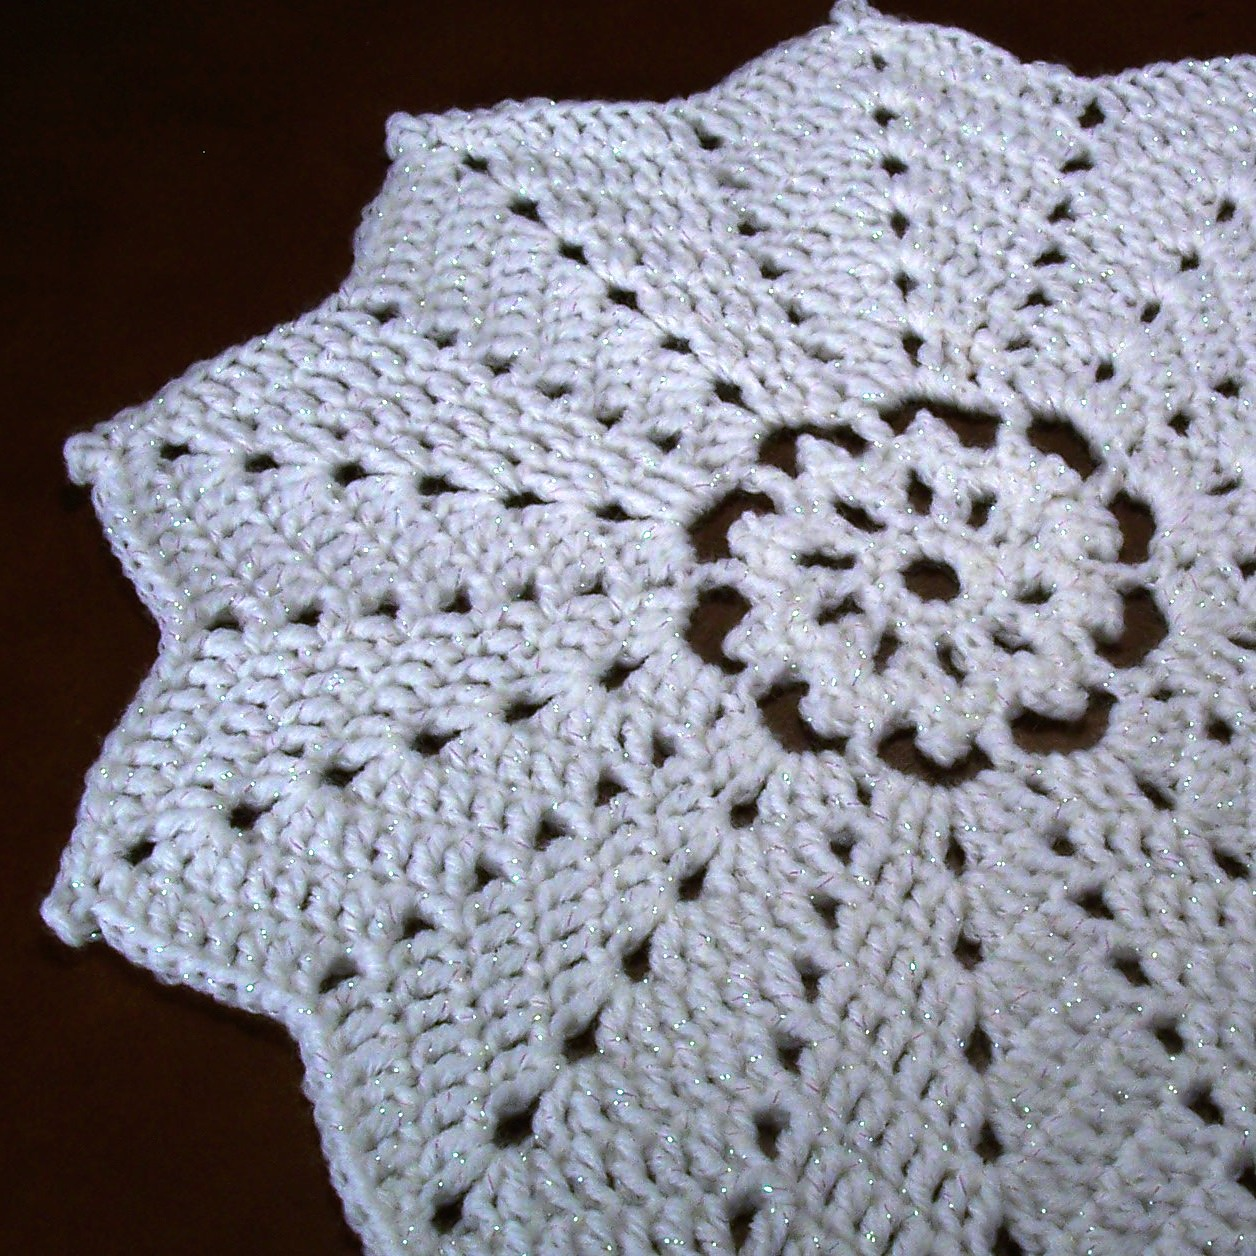 Placemat, Runner, and Glass Jacket Pattern - Free Crochet Pattern